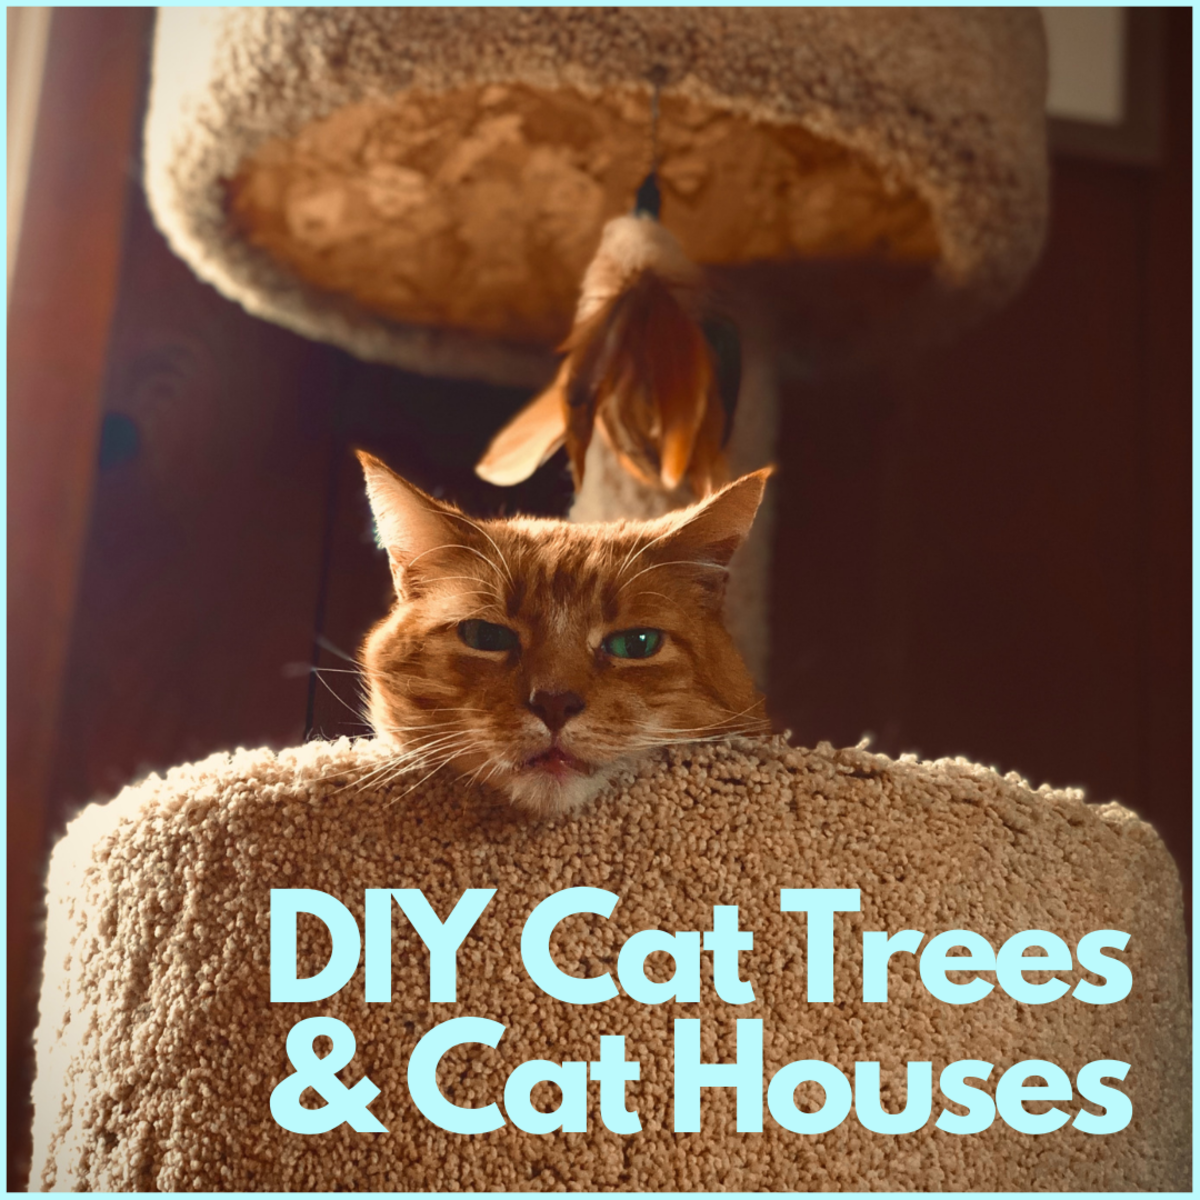 How To Make Homemade Cat Trees And Cat Houses Pethelpful By Fellow Animal Lovers And Experts